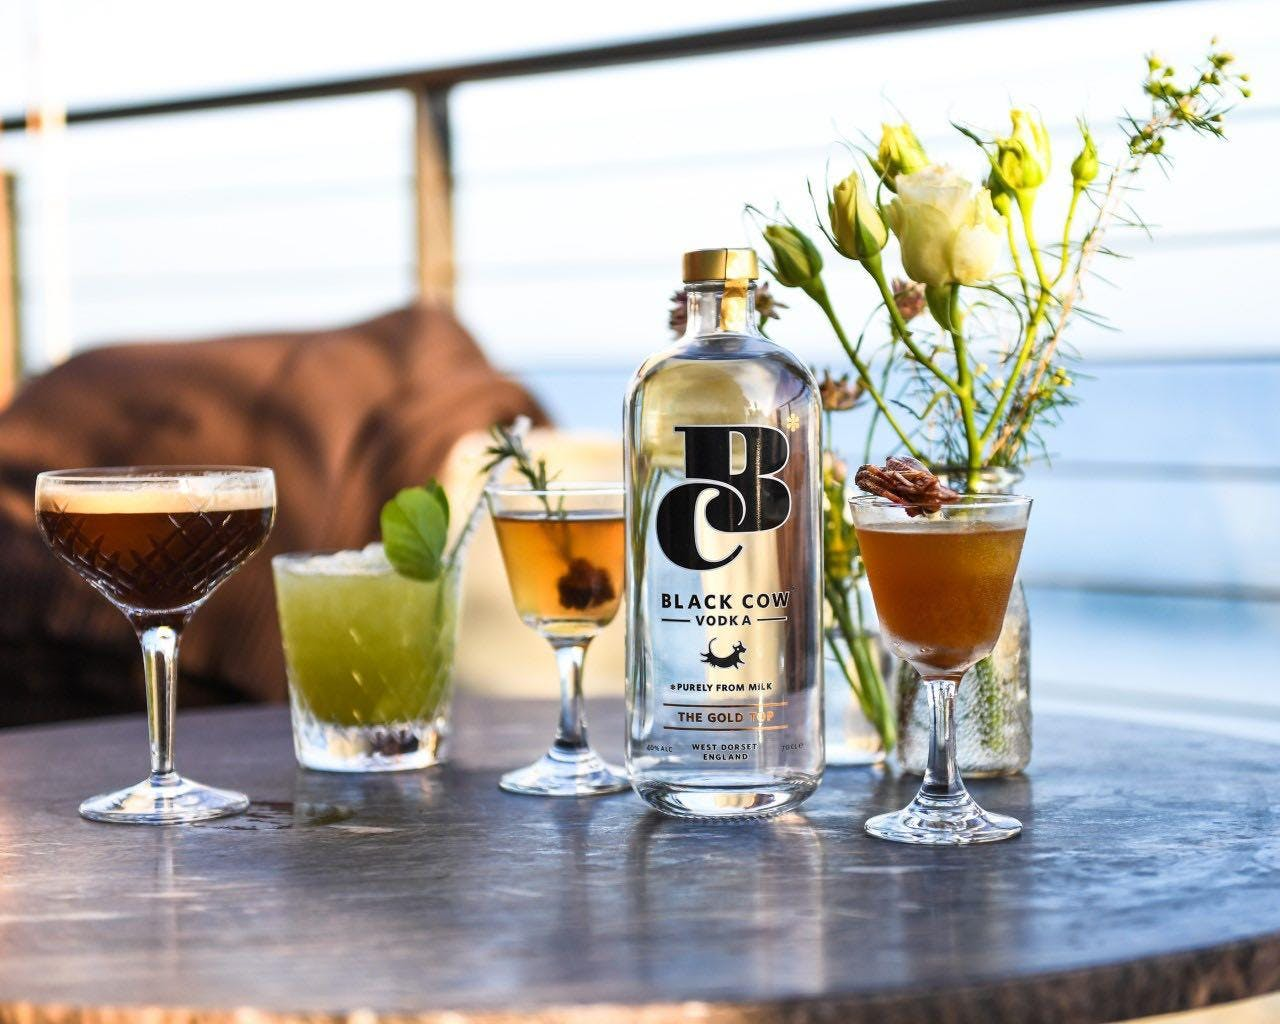 COCKTAIL MASTERCLASS WITH BLACK COW VODKA